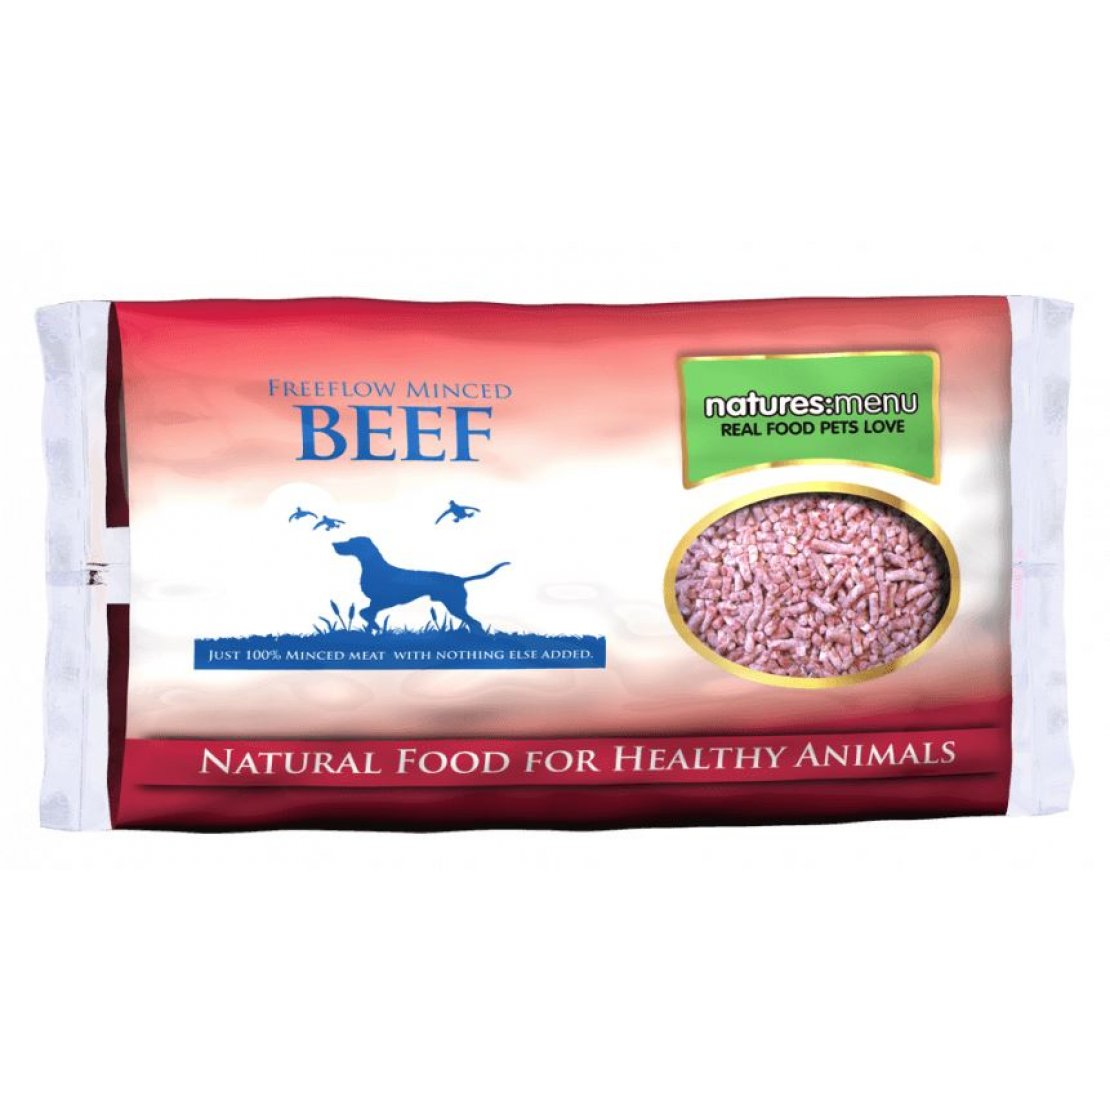 ONLY AVAILABLE FOR LOCAL DELIVERY. Natures Menu Frozen Dog Food. Freeflow Beef.